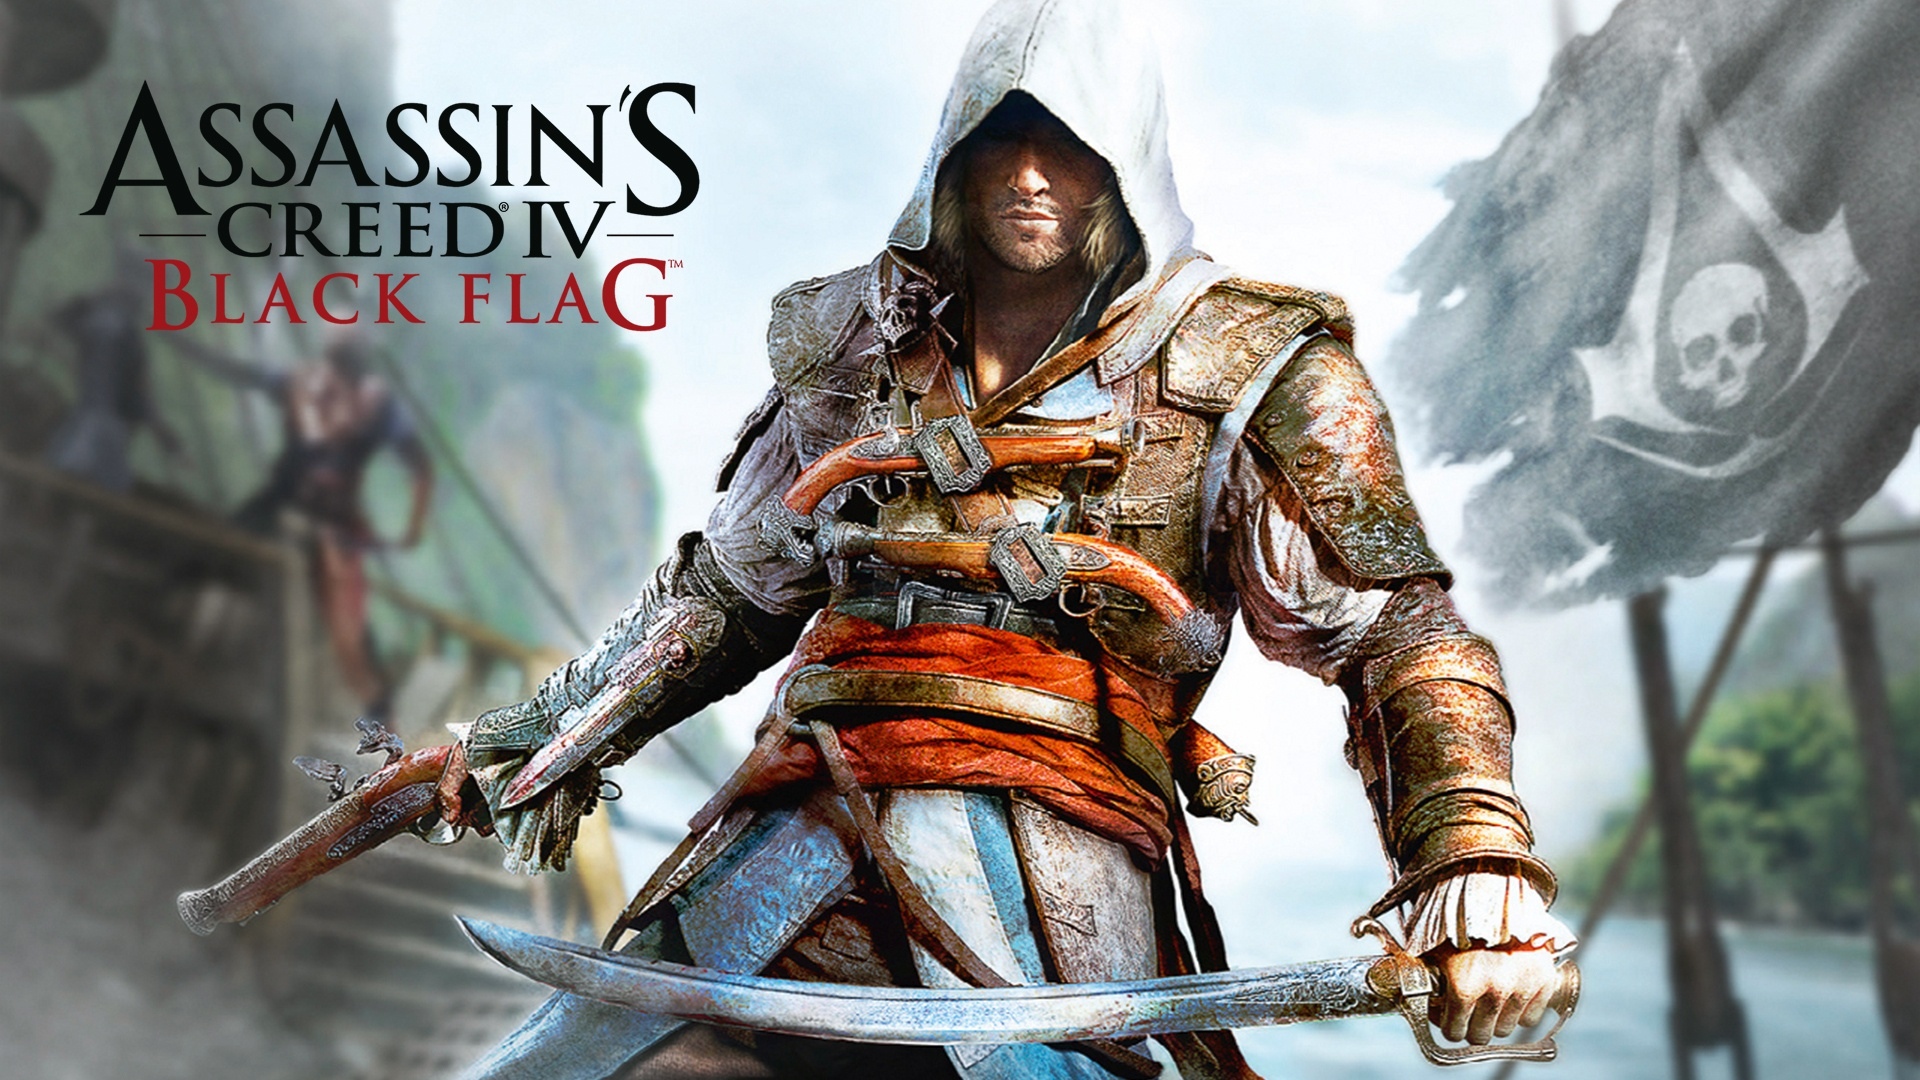 assassins creed black flag wallpapers in jpg format for free download